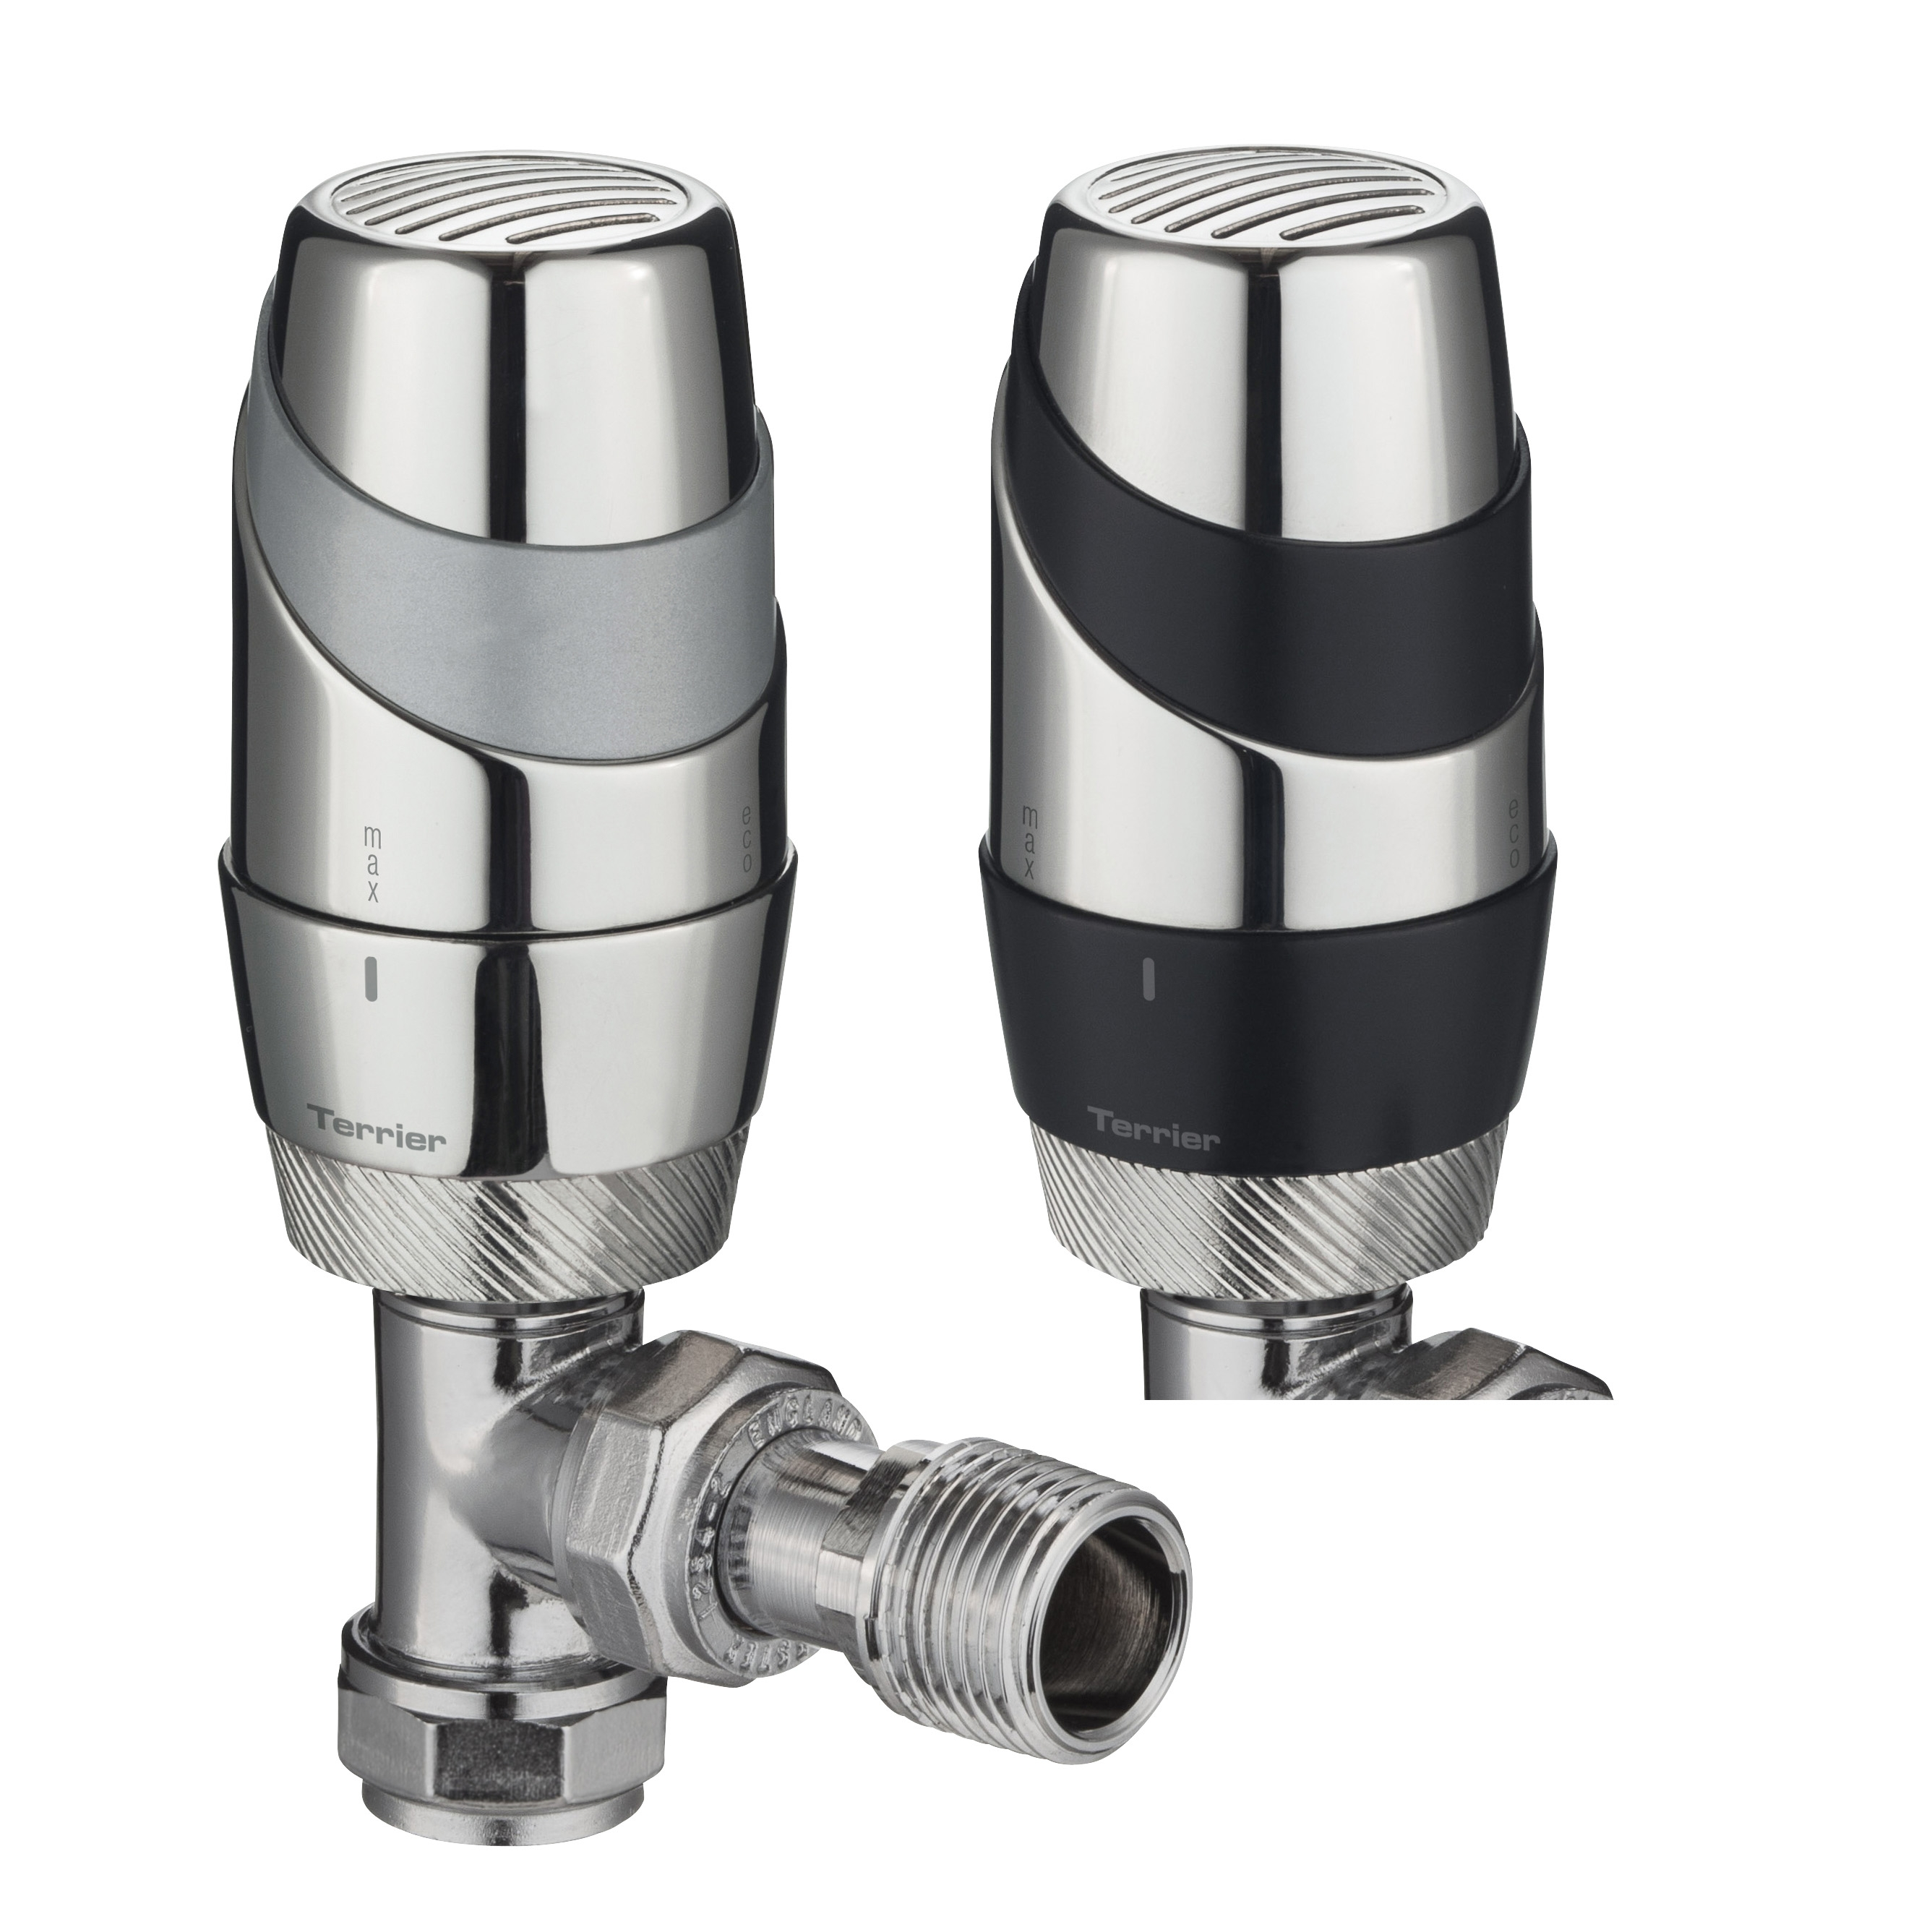 Decorative Radiator Valves